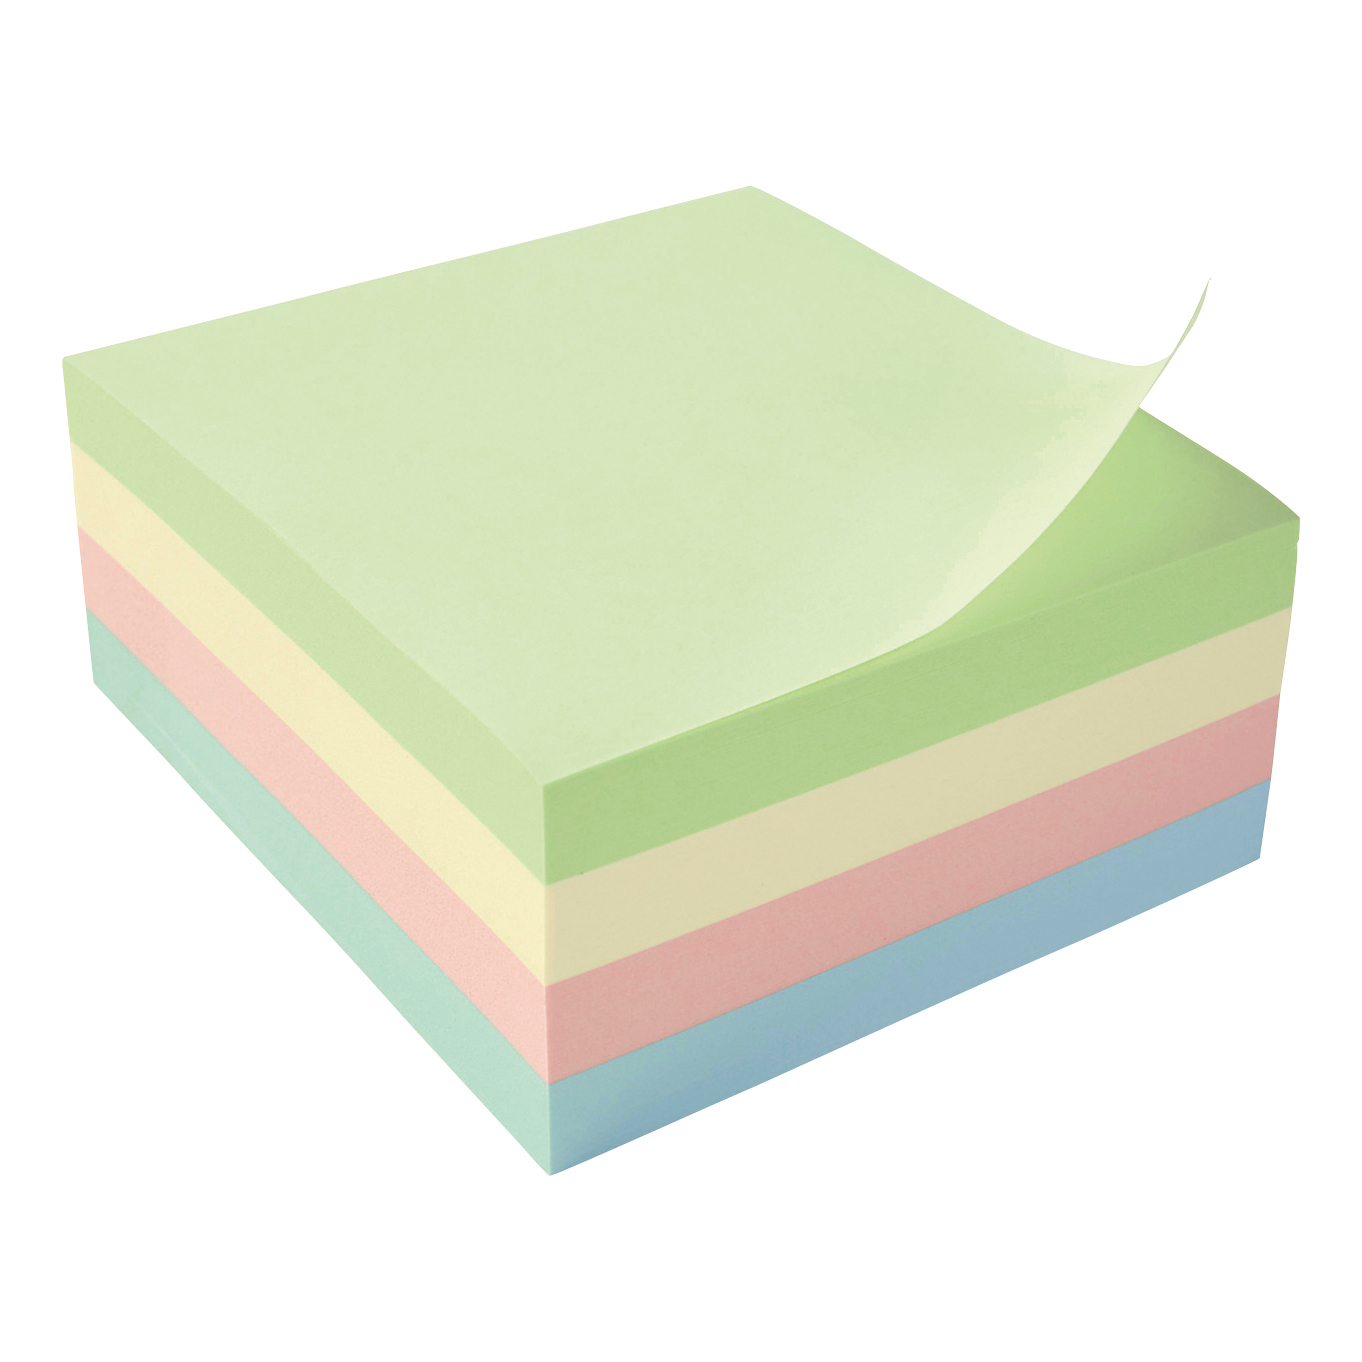 Coloured 5 Star Office Re-Move Notes Cube Pad of 400 Sheets 76x76mm Pastel Rainbow